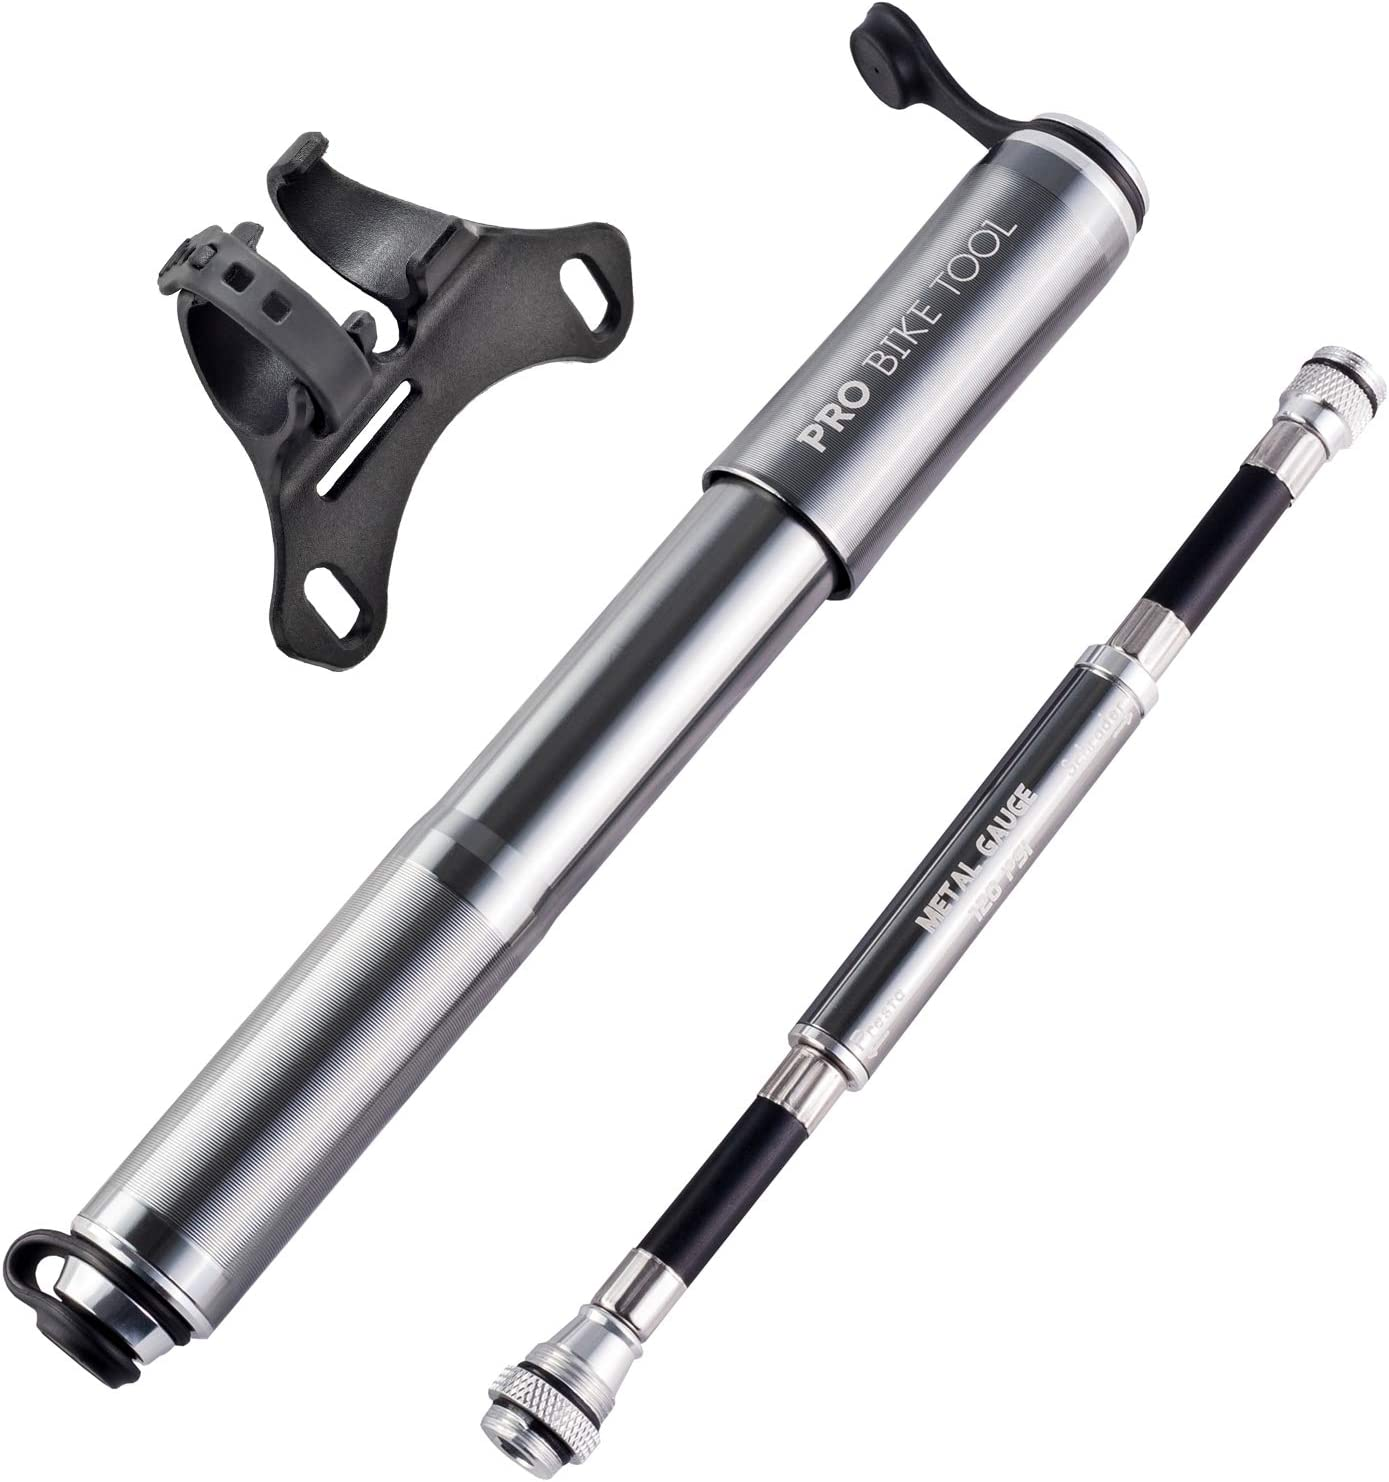 Pro Bike Tool Mini Bike Pump with Gauge, Presta and Schrader Valve